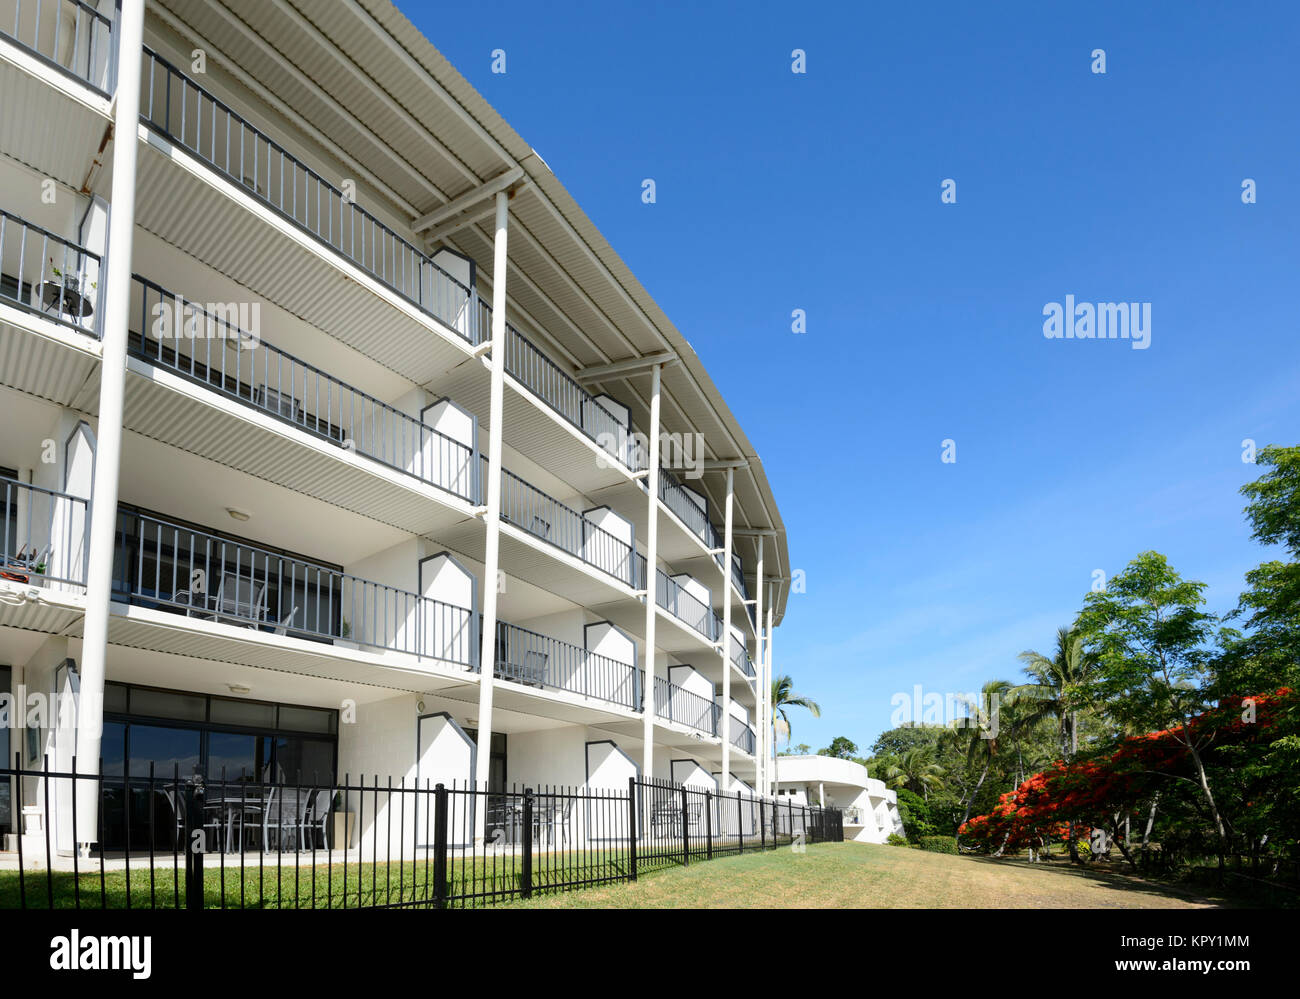 Bellevue Luxury Beachfront Holiday Apartments At Trinity Beach A Popular Northern Beaches Suburb Of Cairns Far North Queensland Fnq Qld Australia